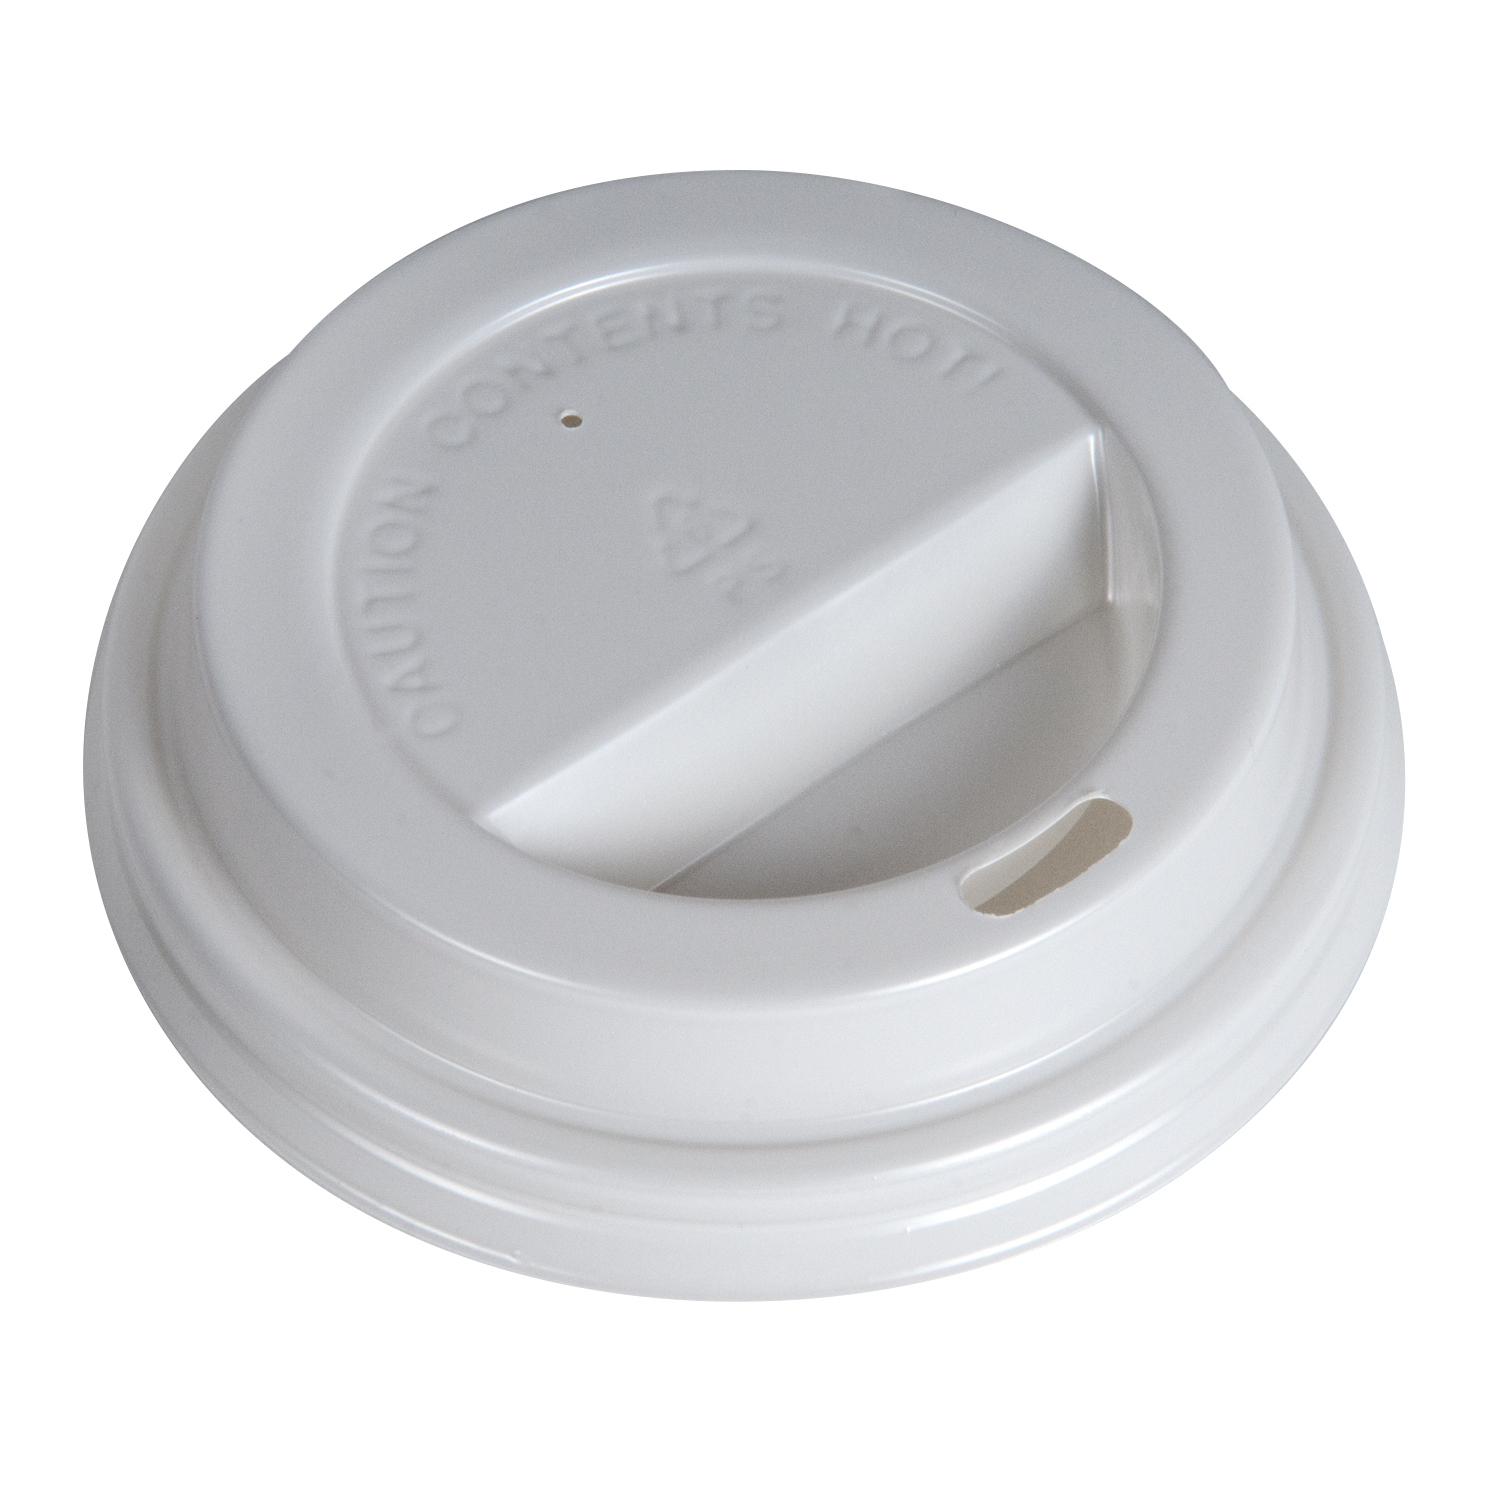 YesEco 80mm White Dome Lid